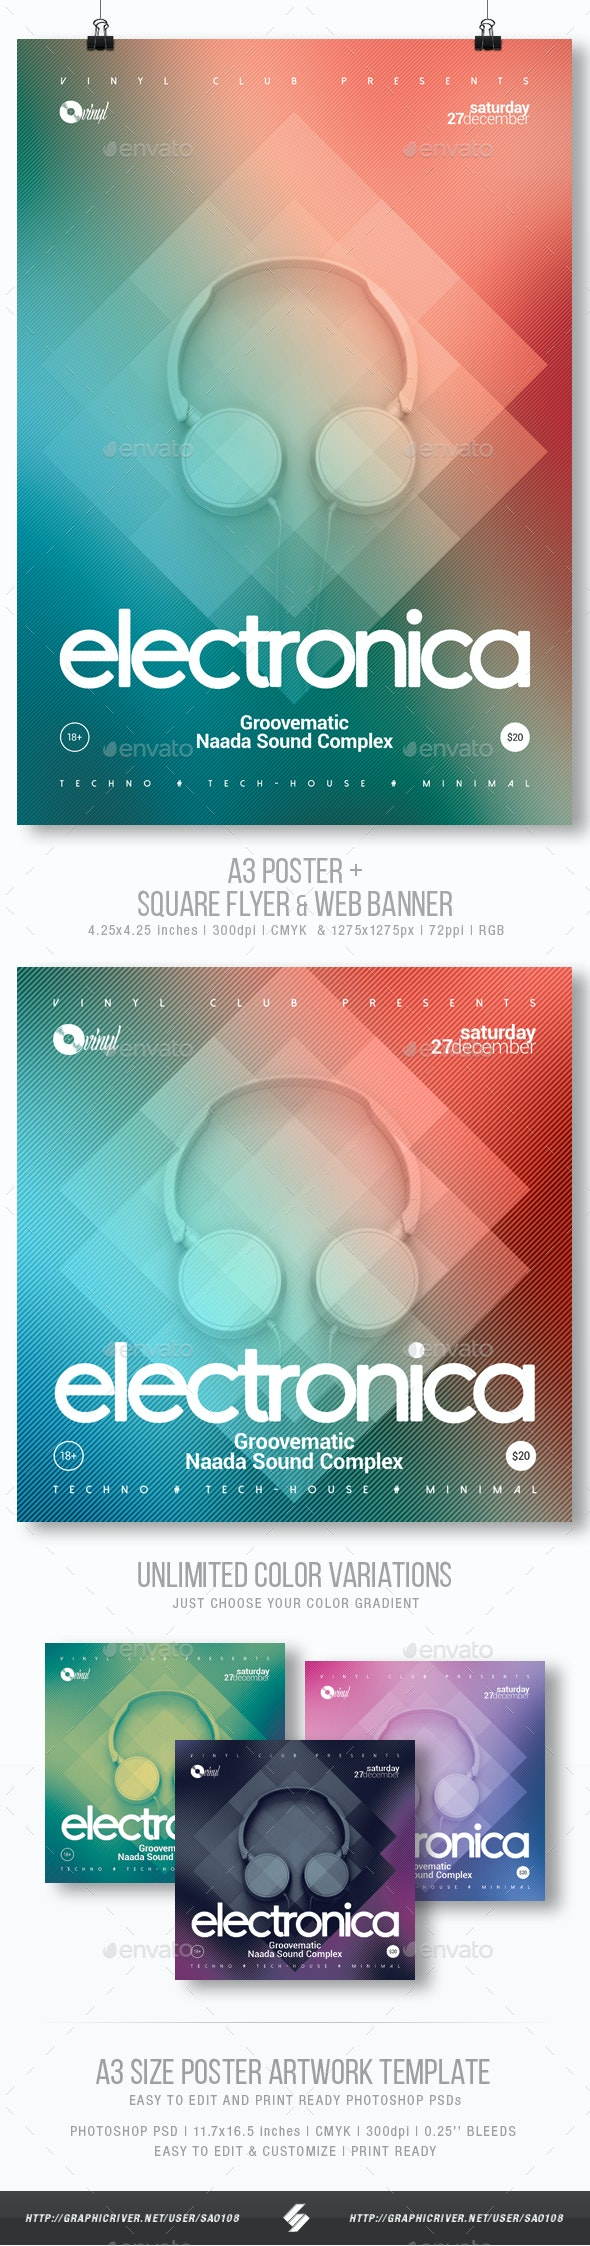 Electronica - Club Party Flyer / Poster Template A3 - Clubs & Parties Events